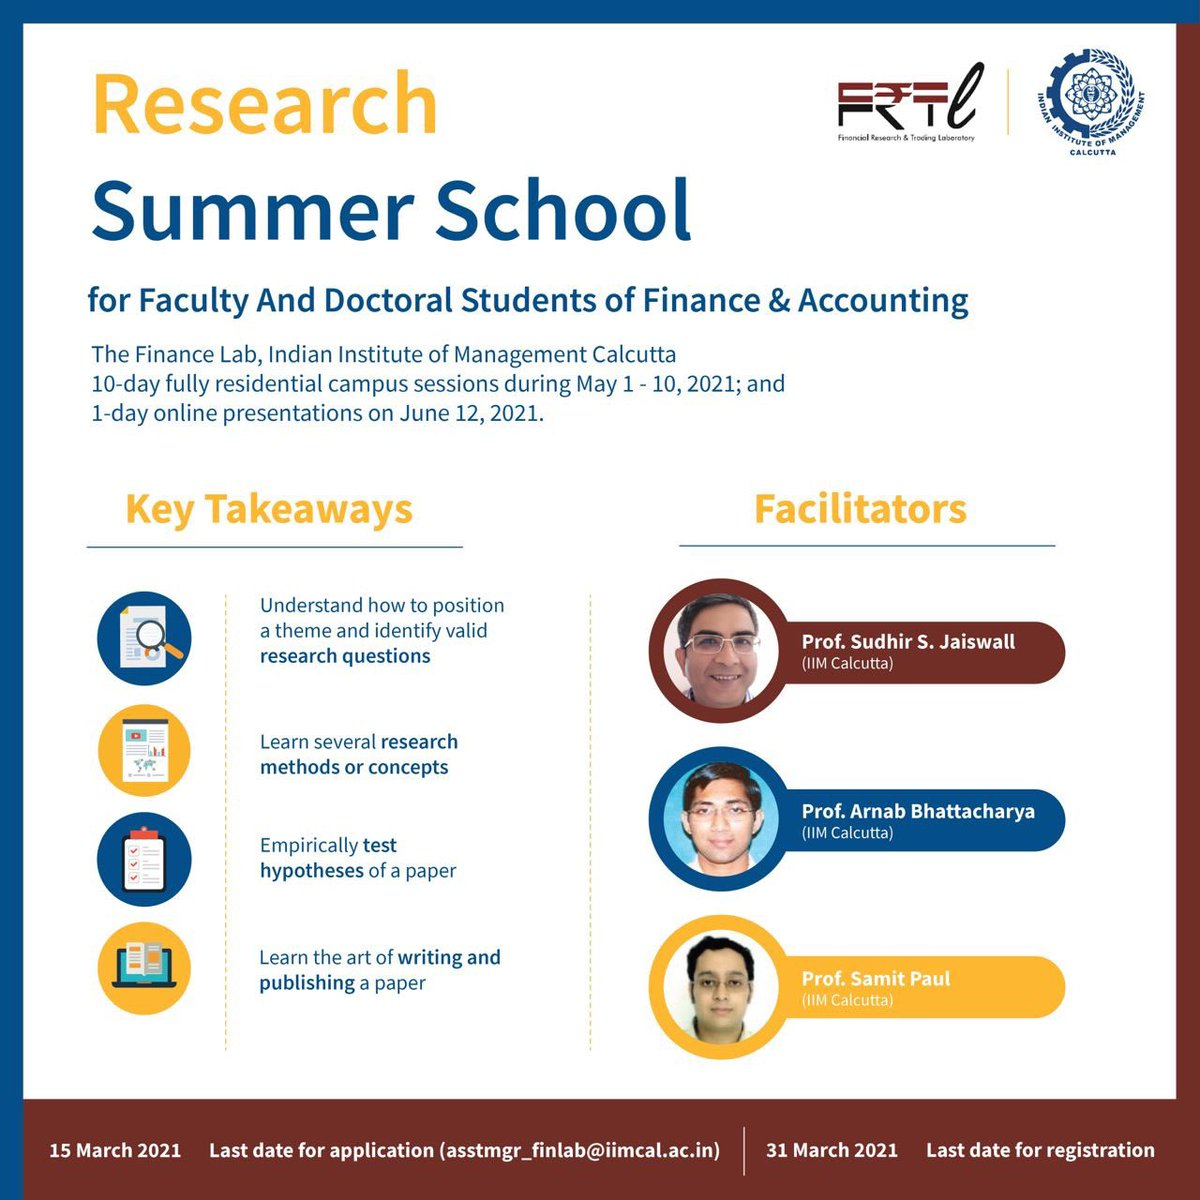 The Financial Research and Trading Laboratory of IIM Calcutta is organizing the 6th summer school on Empirical Finance and Accounting Research starting from May 1 - 10, 2021, and 1-day online presentations on June 12, 2021. Register now! https://t.co/nQ3E7r6B8p https://t.co/EX8IRKrizj